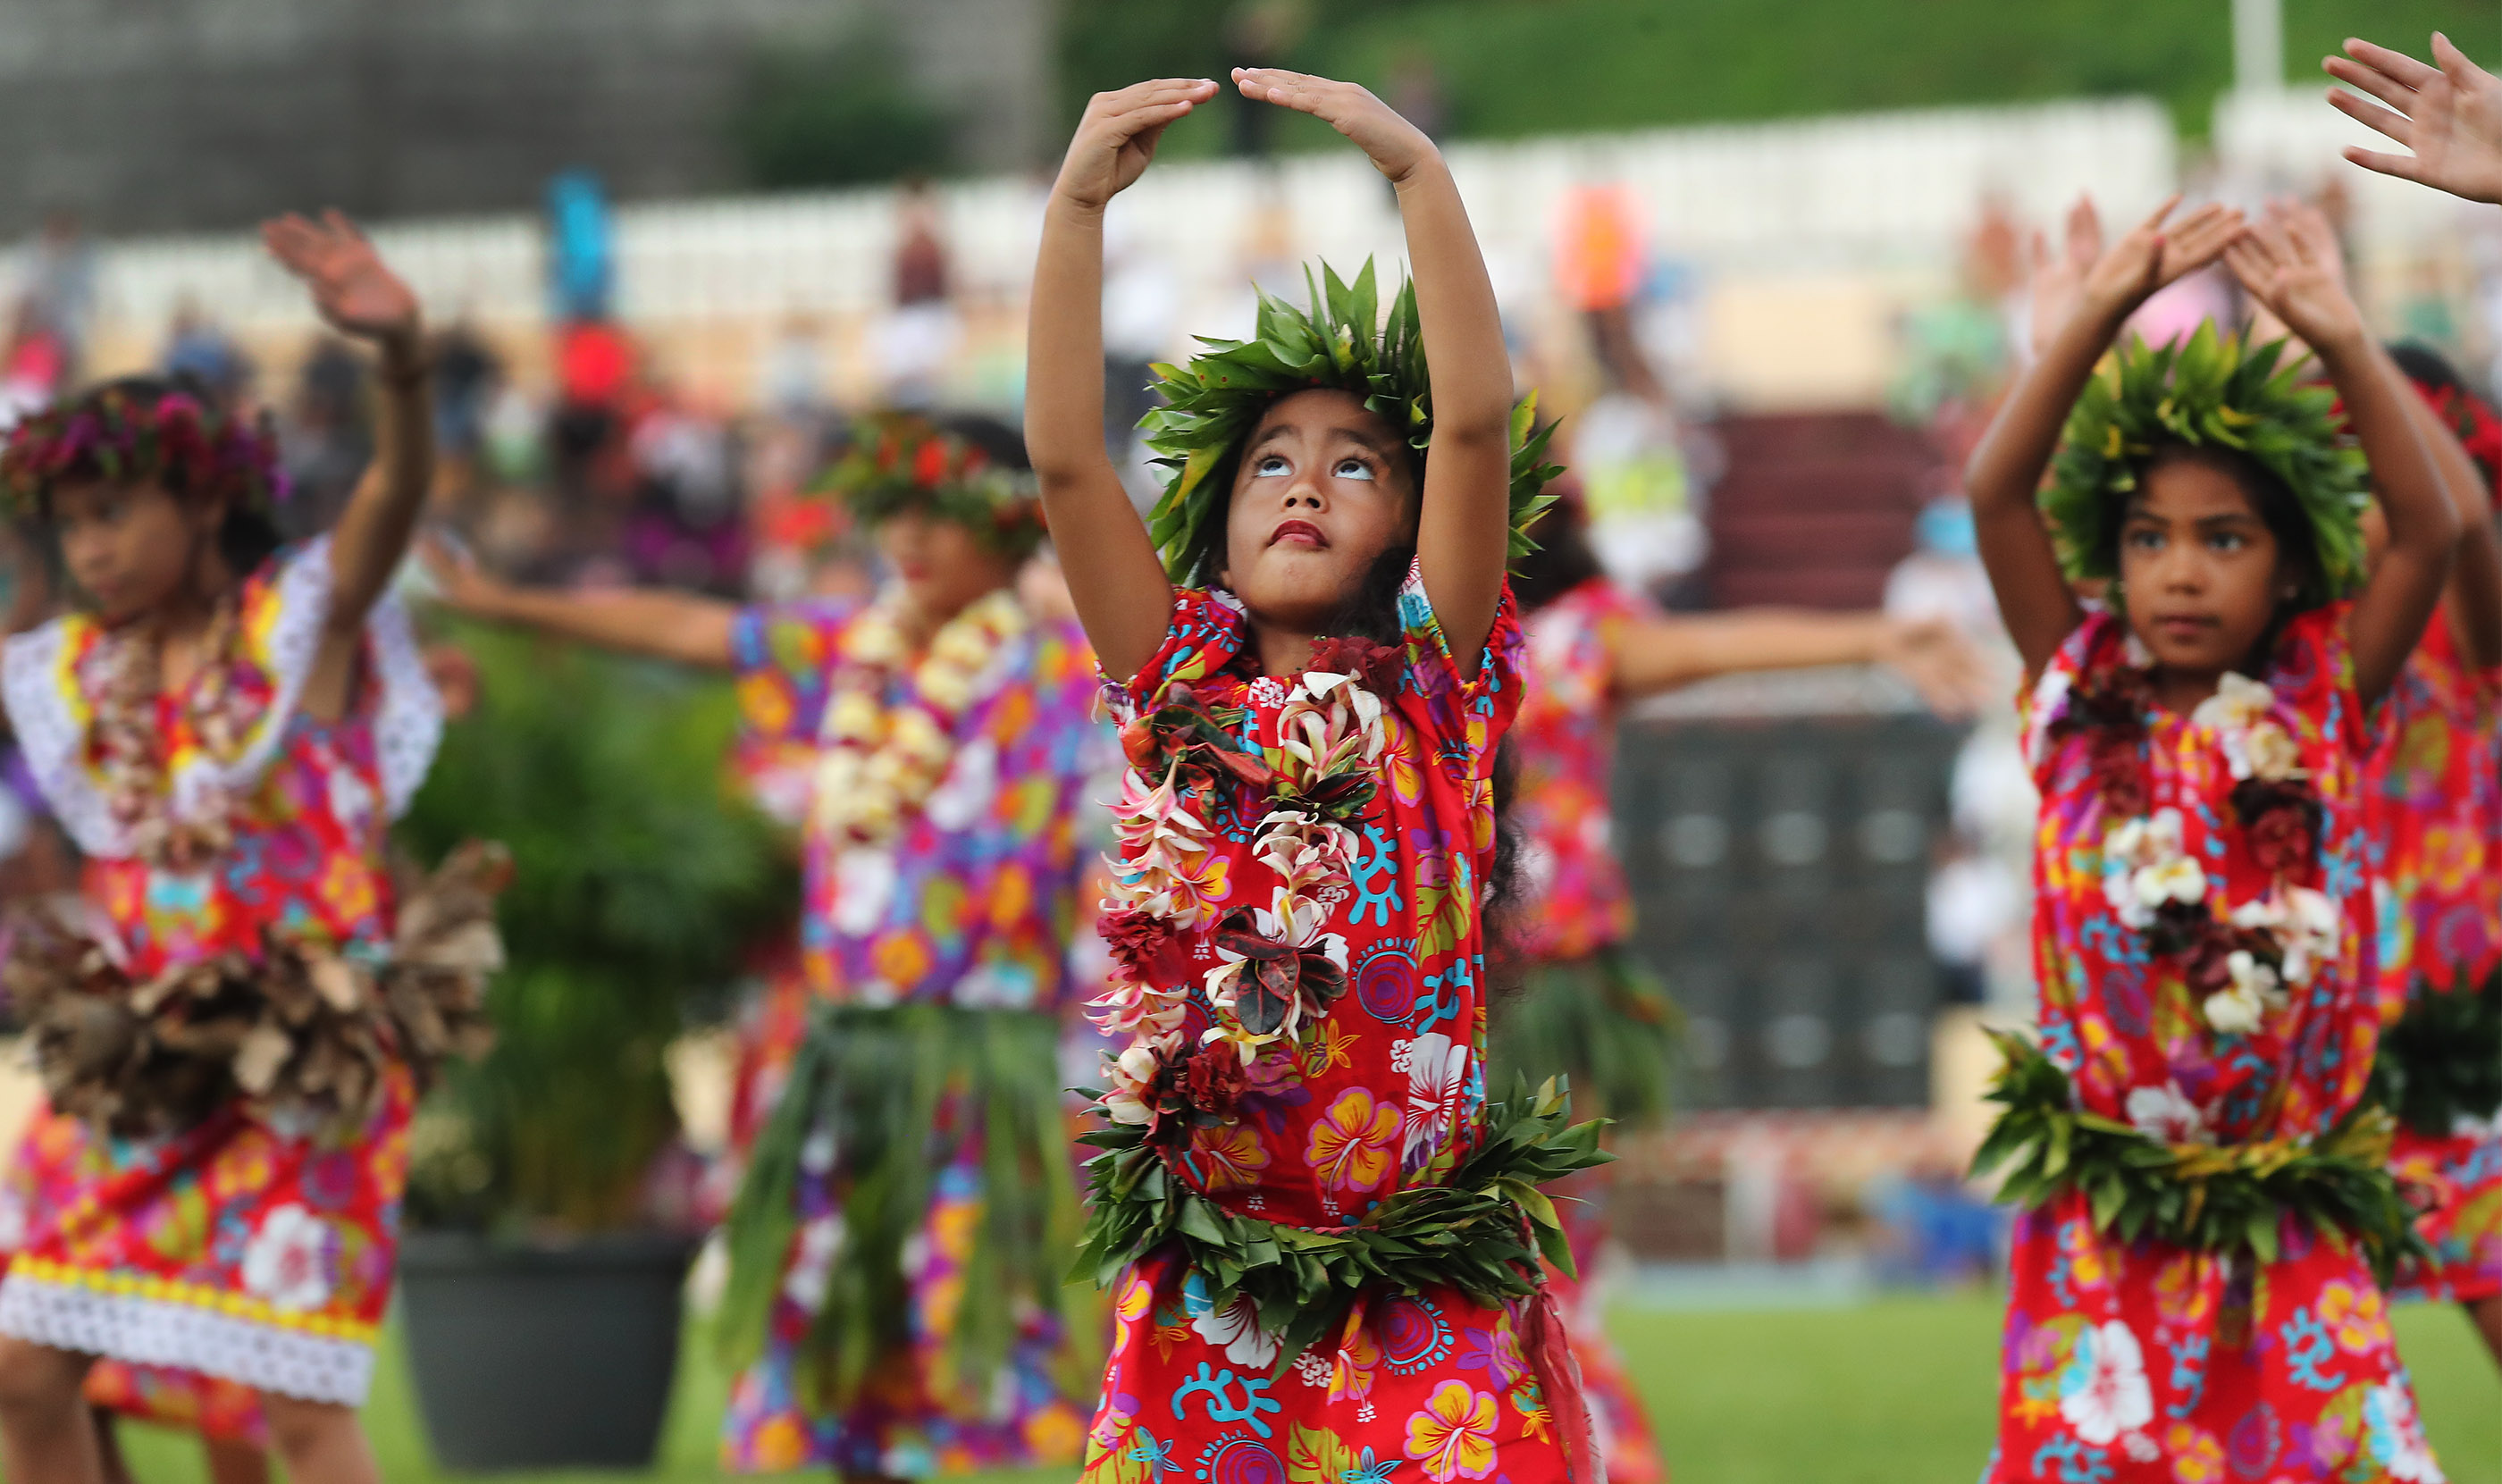 Performers dance during a Tahiti cultural program for President Russell M. Nelson of The Church of Jesus Christ of Latter-day Saints in Papeete, Tahiti, on May 24, 2019.